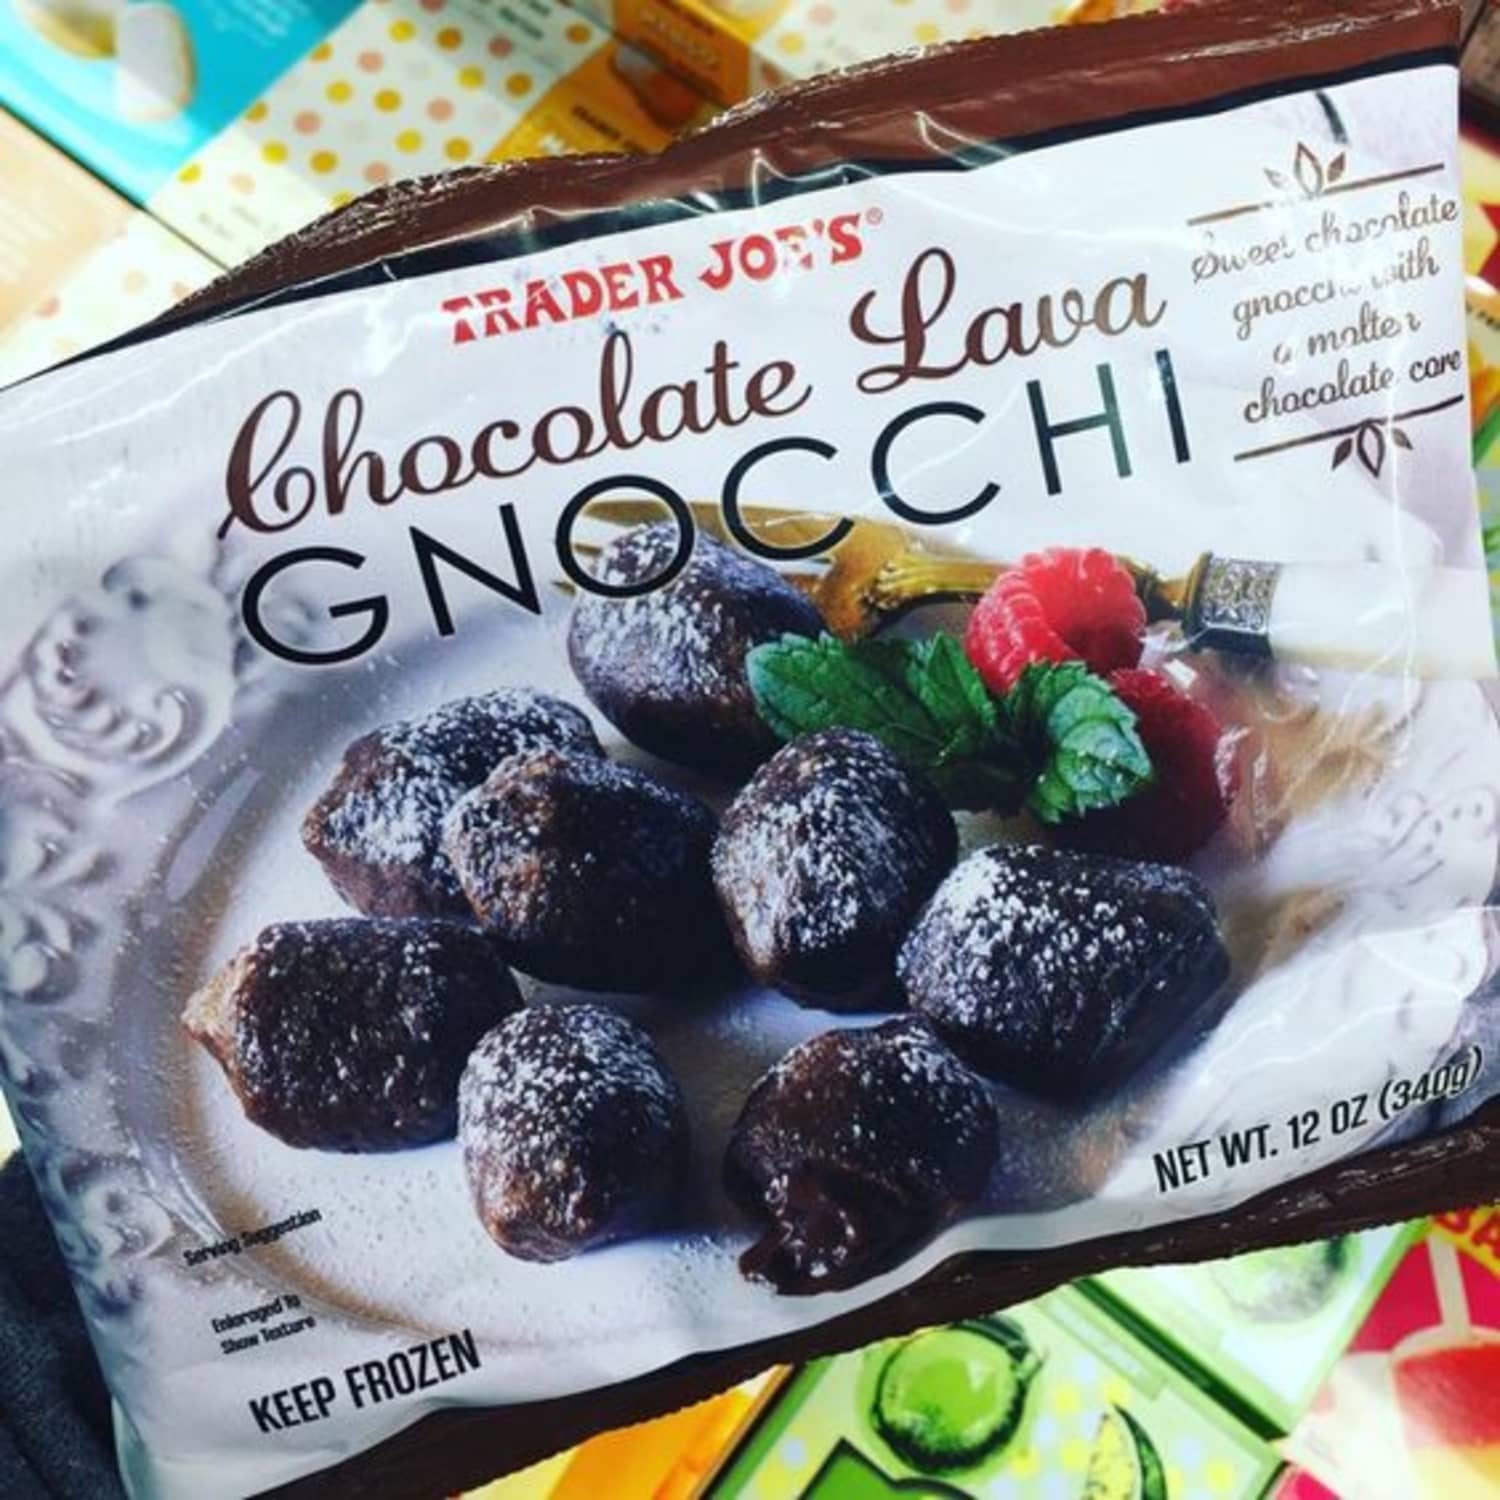 Trader Joe's Is Now Selling Chocolate Lava Gnocchi and I'm Totally Freaking Out